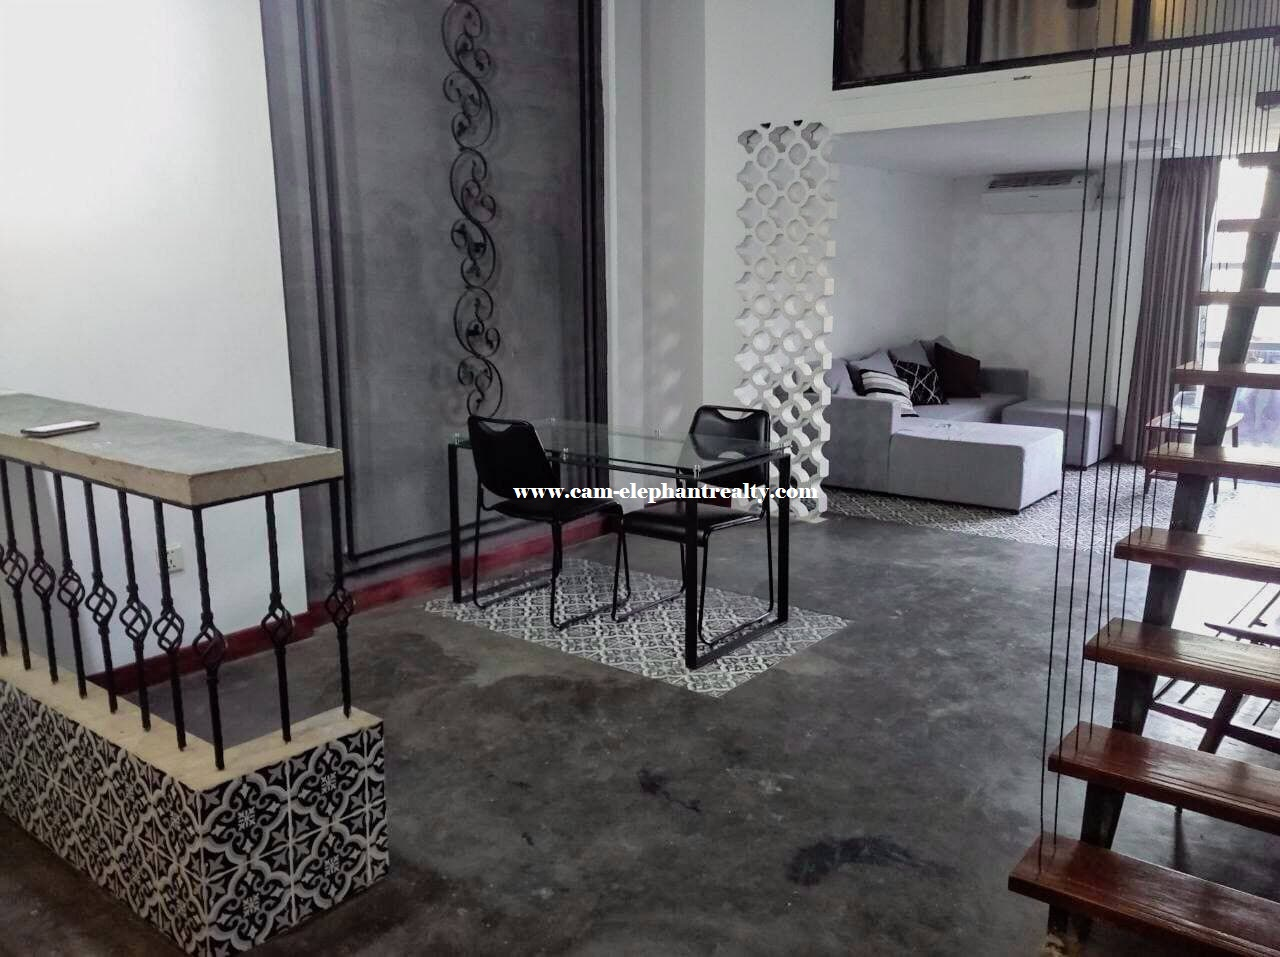 Apartment for Rent (1 bedroom; Sen Sok area)